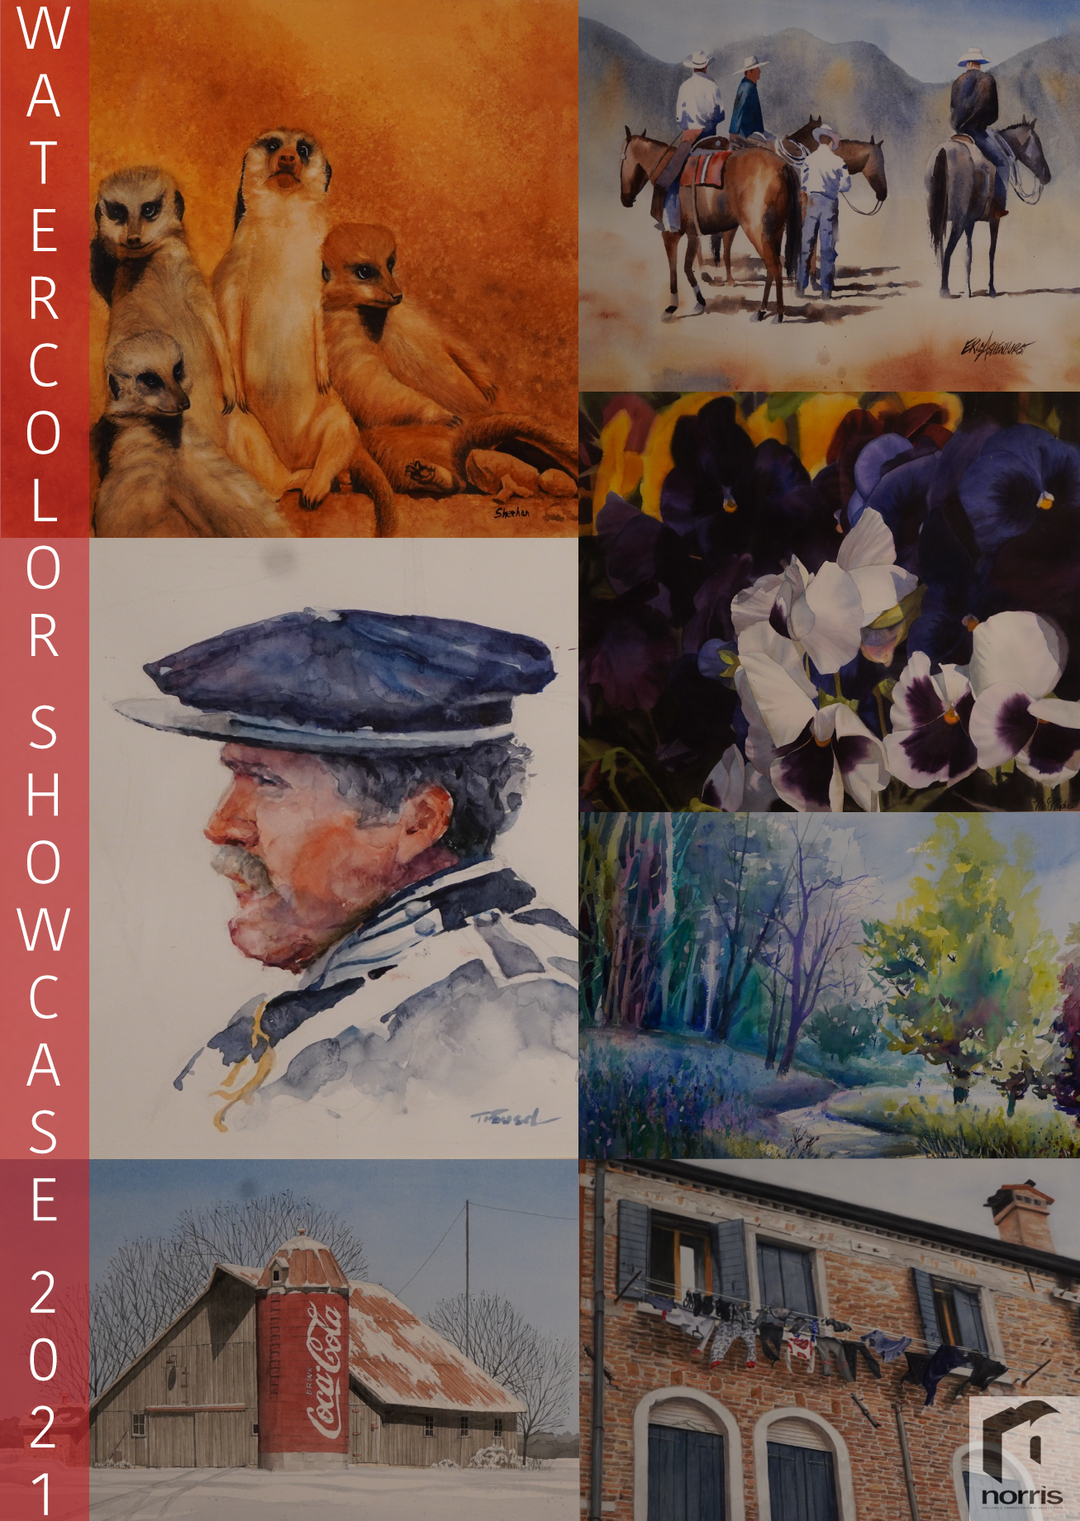 story from: Norris Cultural Arts Presents WaterColor Gallery (2021)